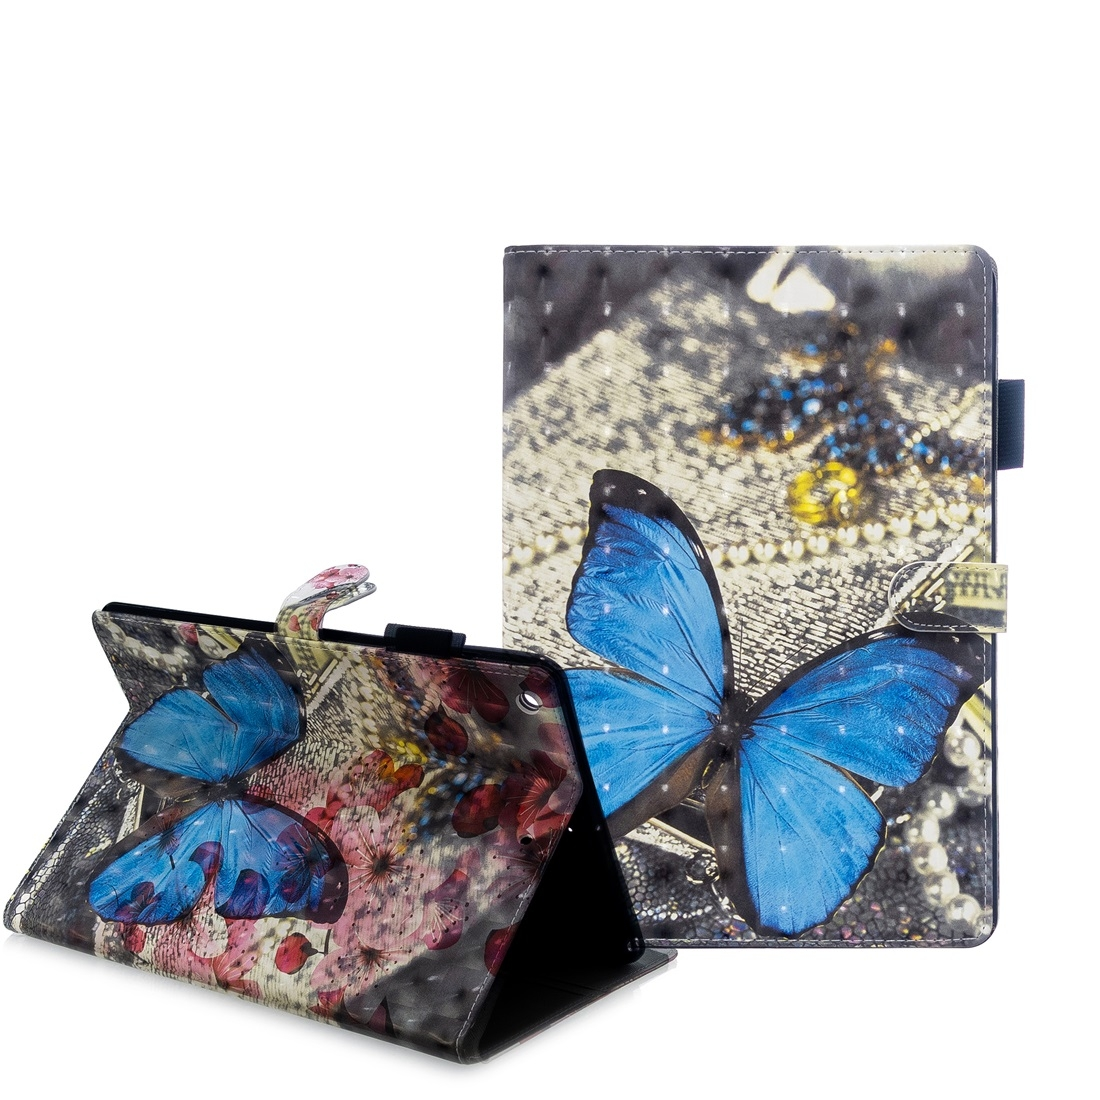 iPad 7th Generation Case (10.2 Inch) 3D Embossing Leather Case & Slim Profile (Blue Butterfly)